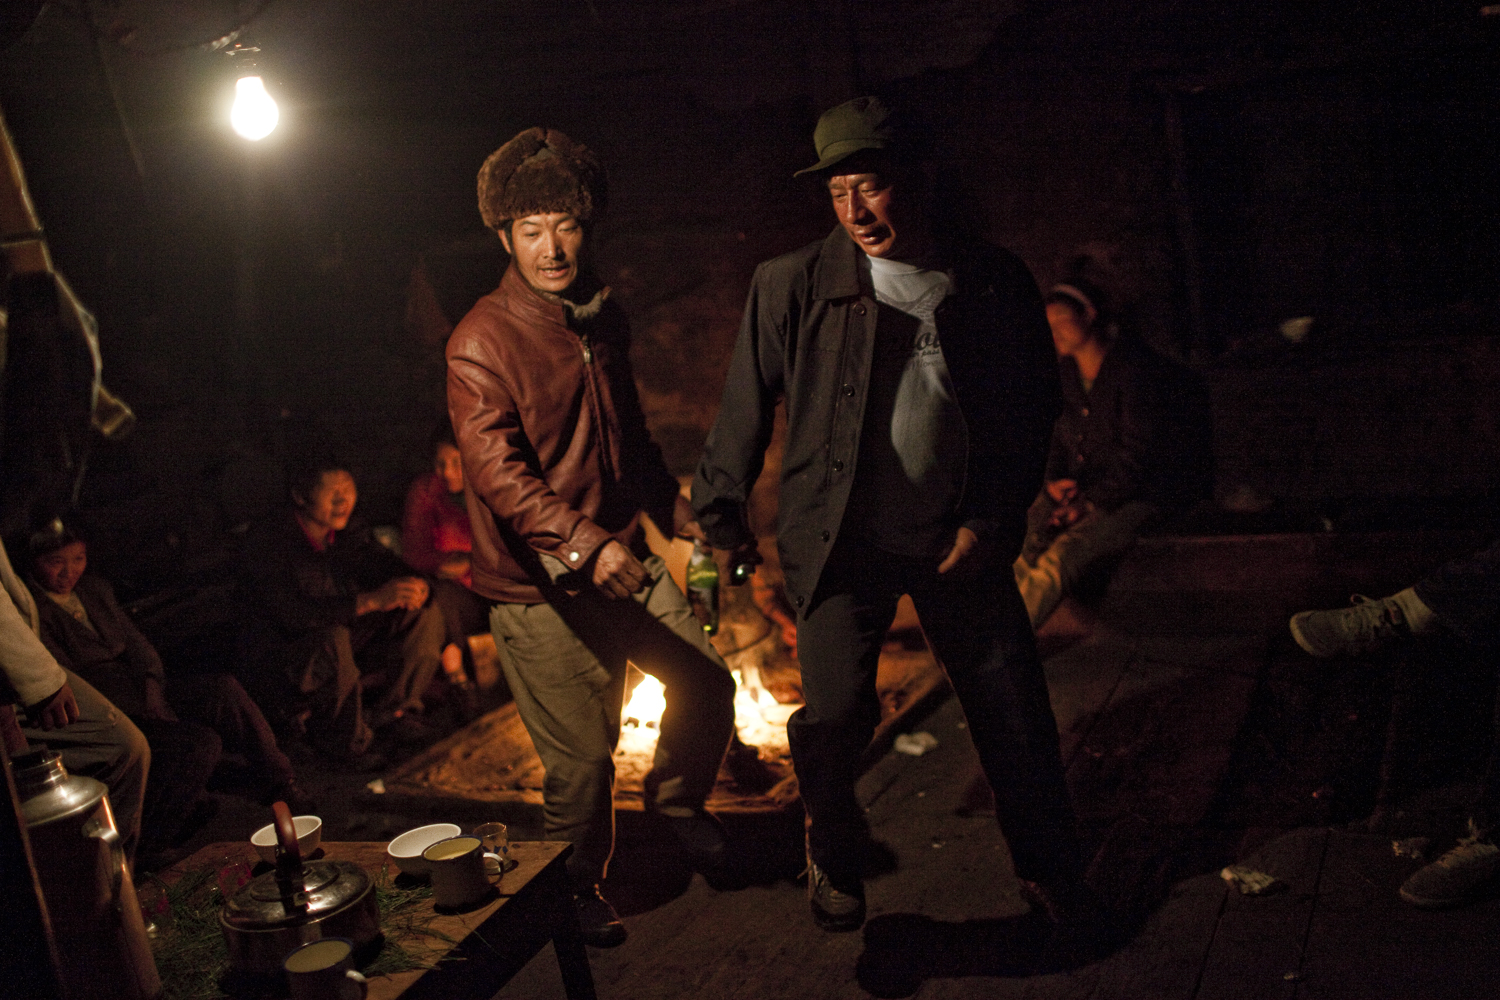 Qiunatong Village, Yunnan. Nu villagers gather at a home to drink and dance. At midnight on New Years Eve everyone was supposed to drink spring water but most never made it out of these house parties.